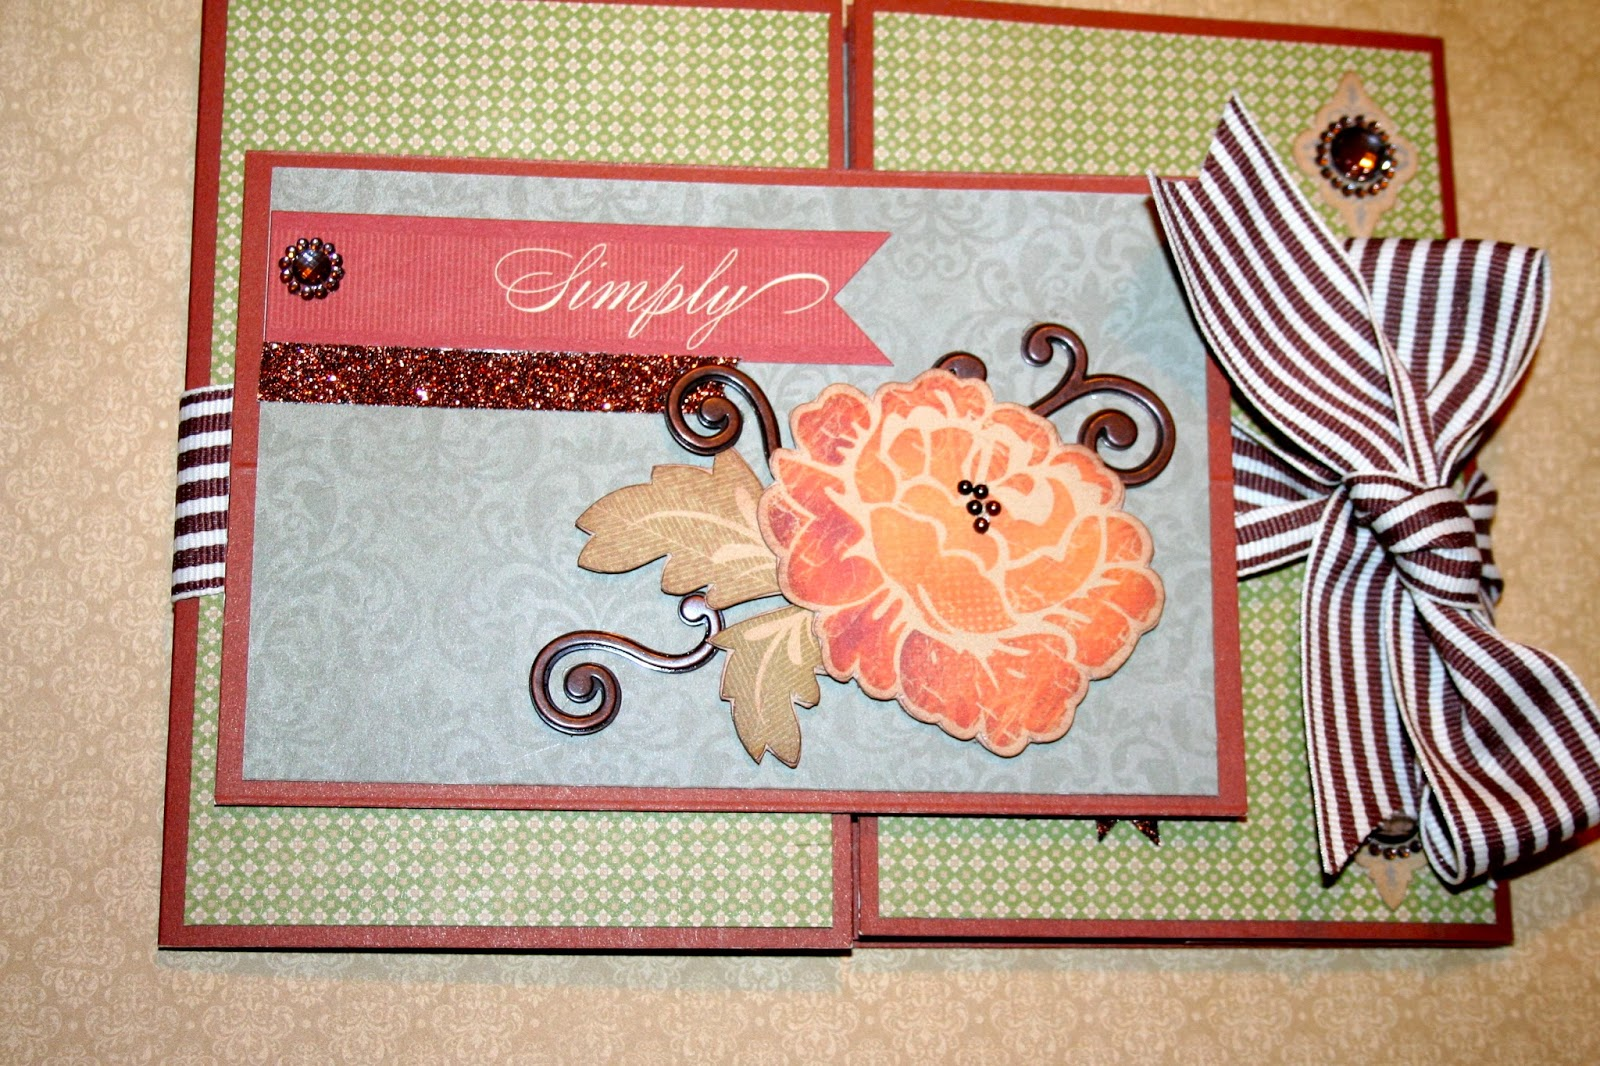 The happy scrapbooker huntington tri shutter mini album for Huntington card designs